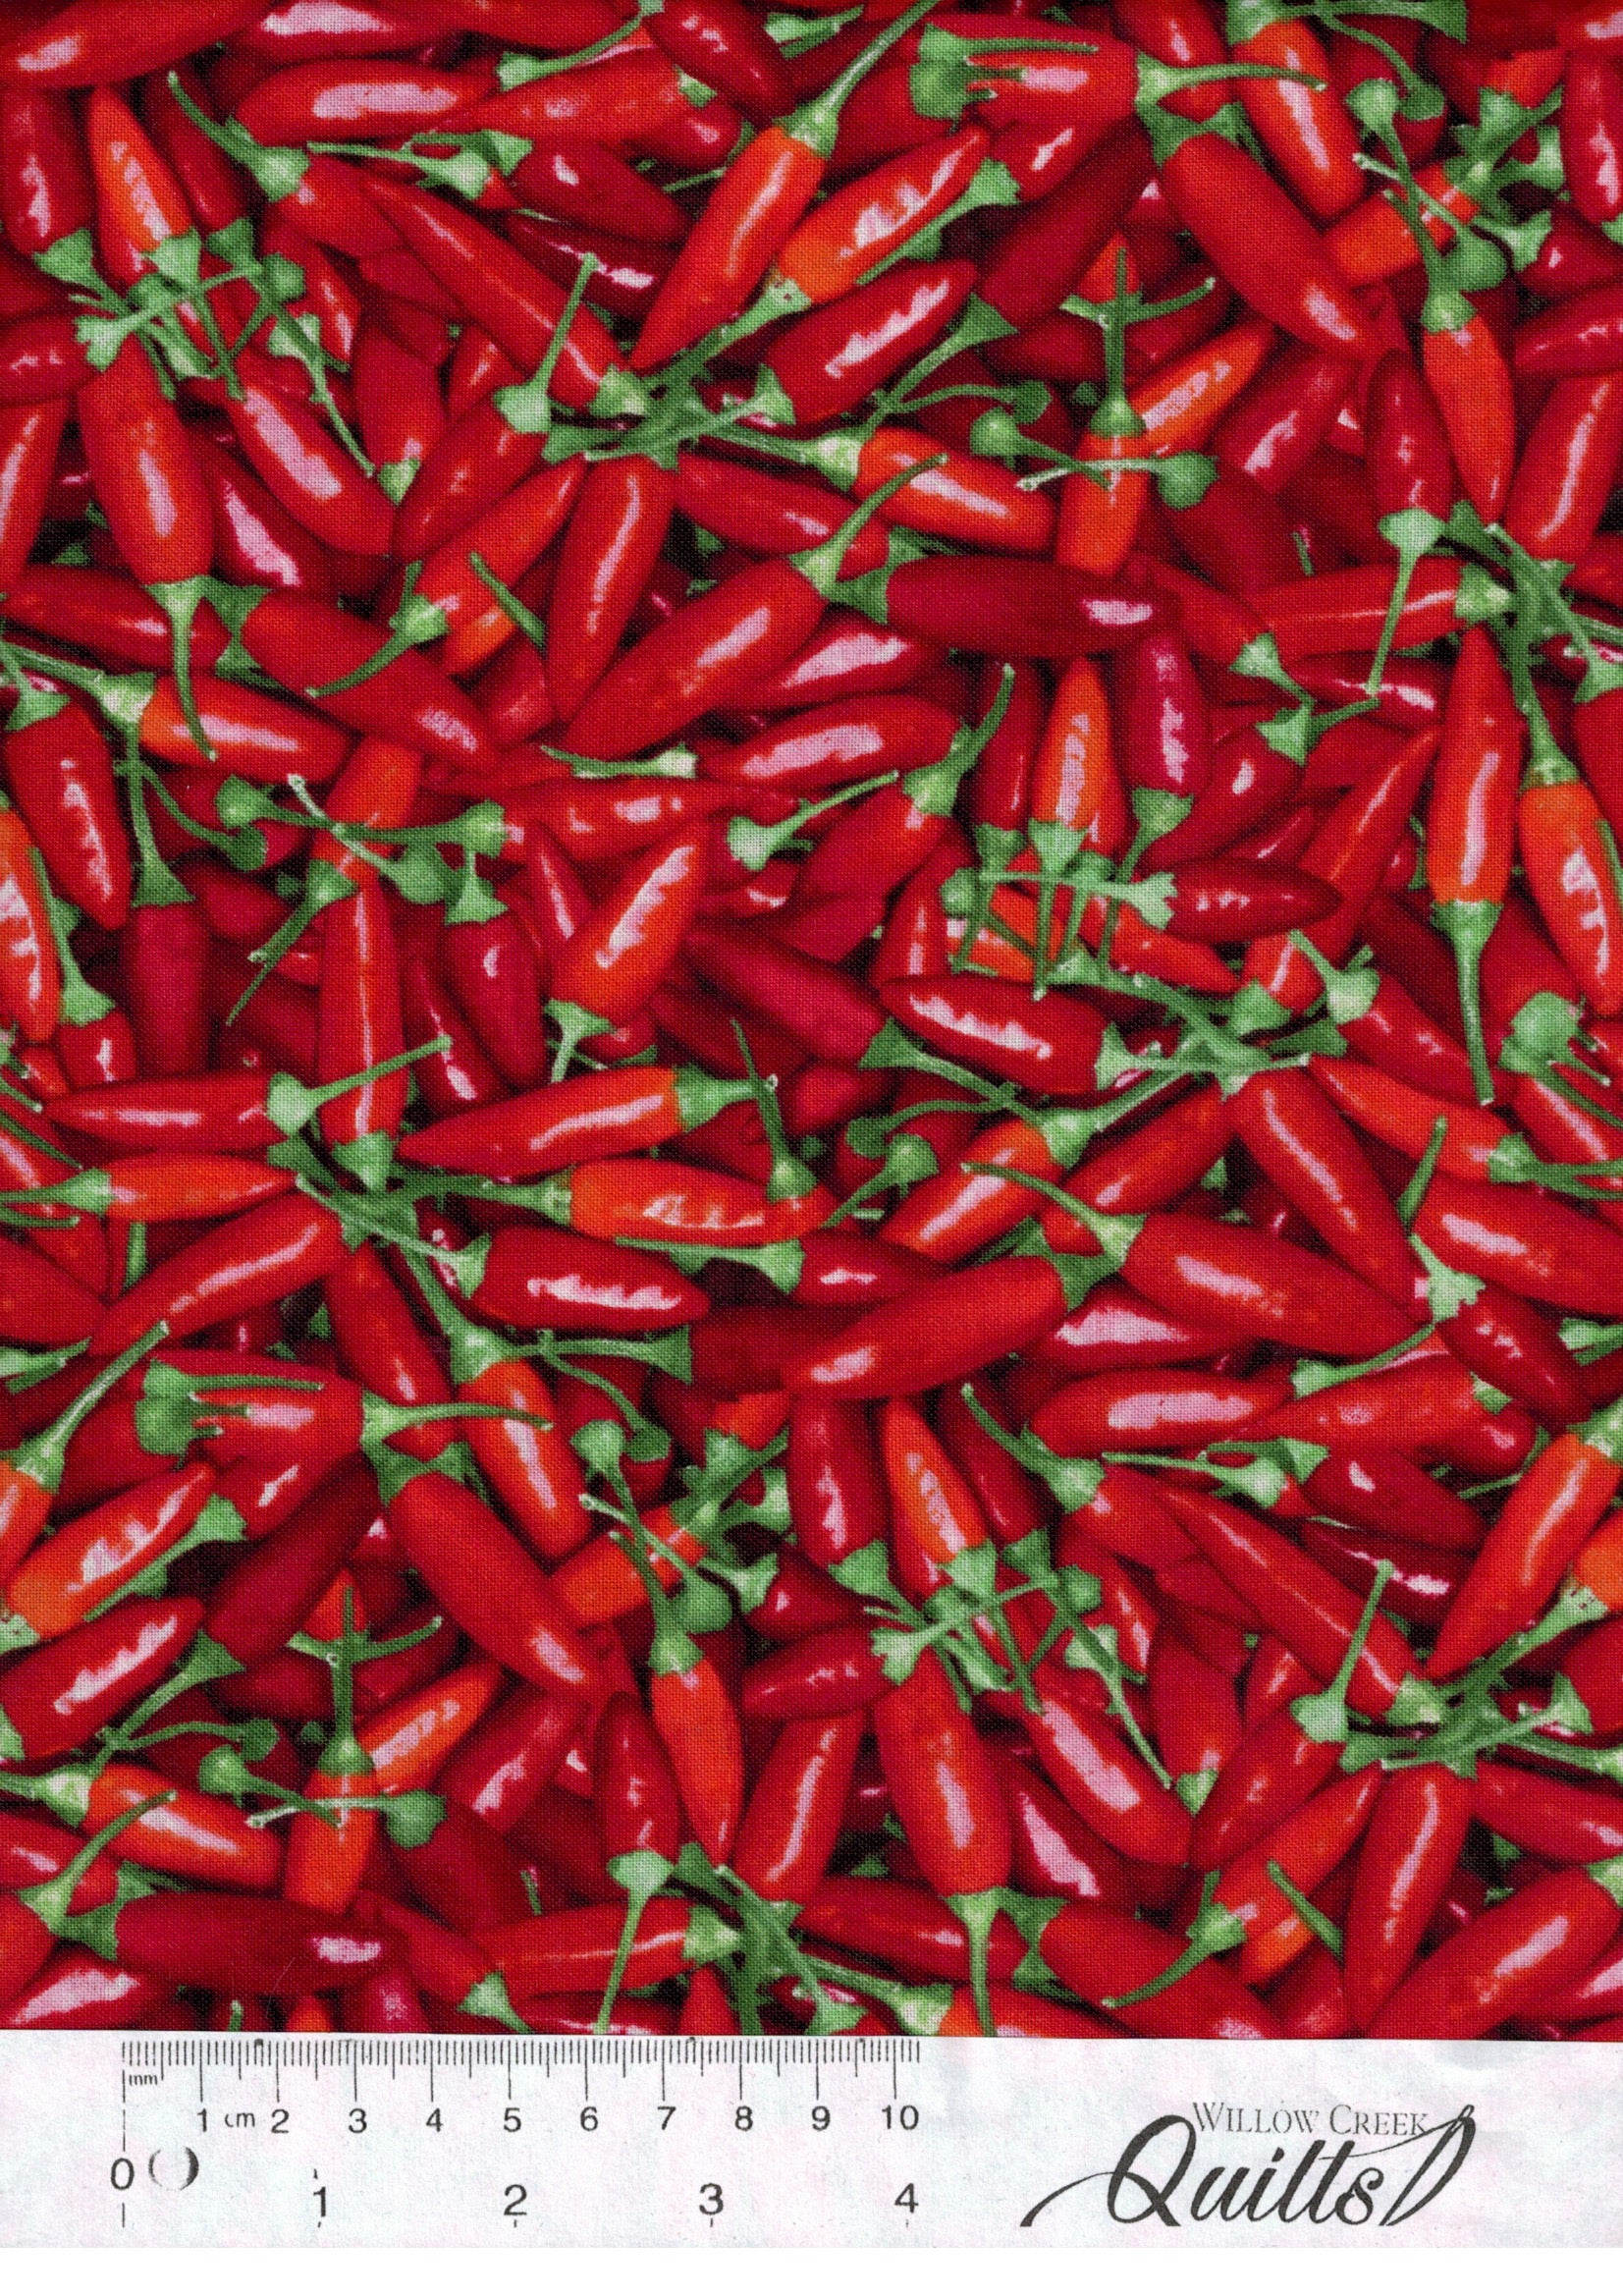 Farmer's Market 2010 - Red Chilli Peppers - 30450-1